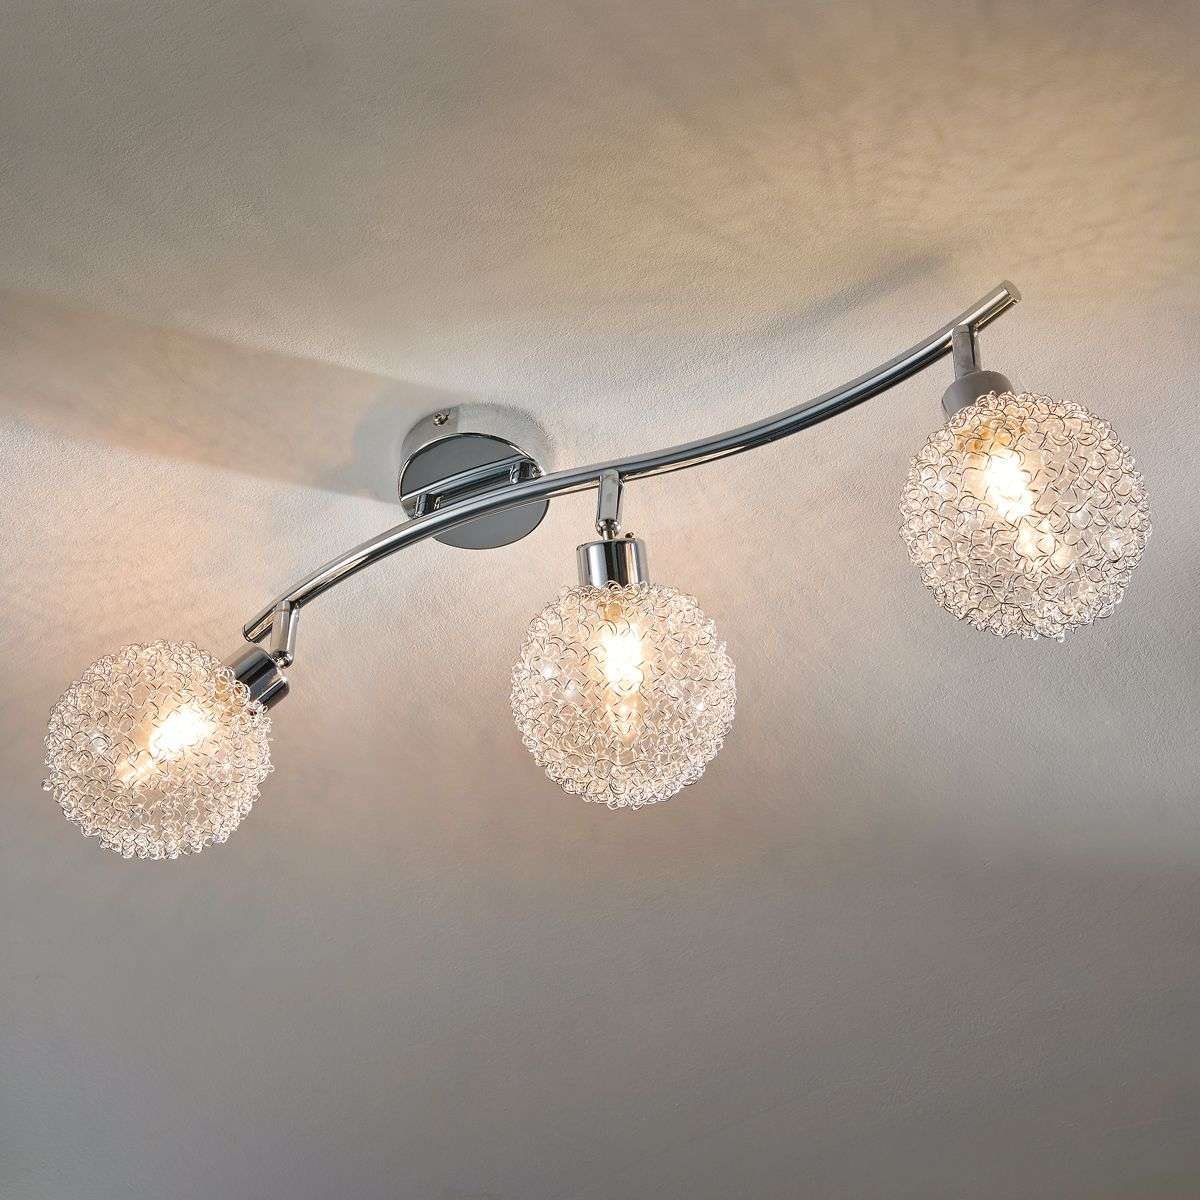 3 Bulb LED Ceiling Light Ticino